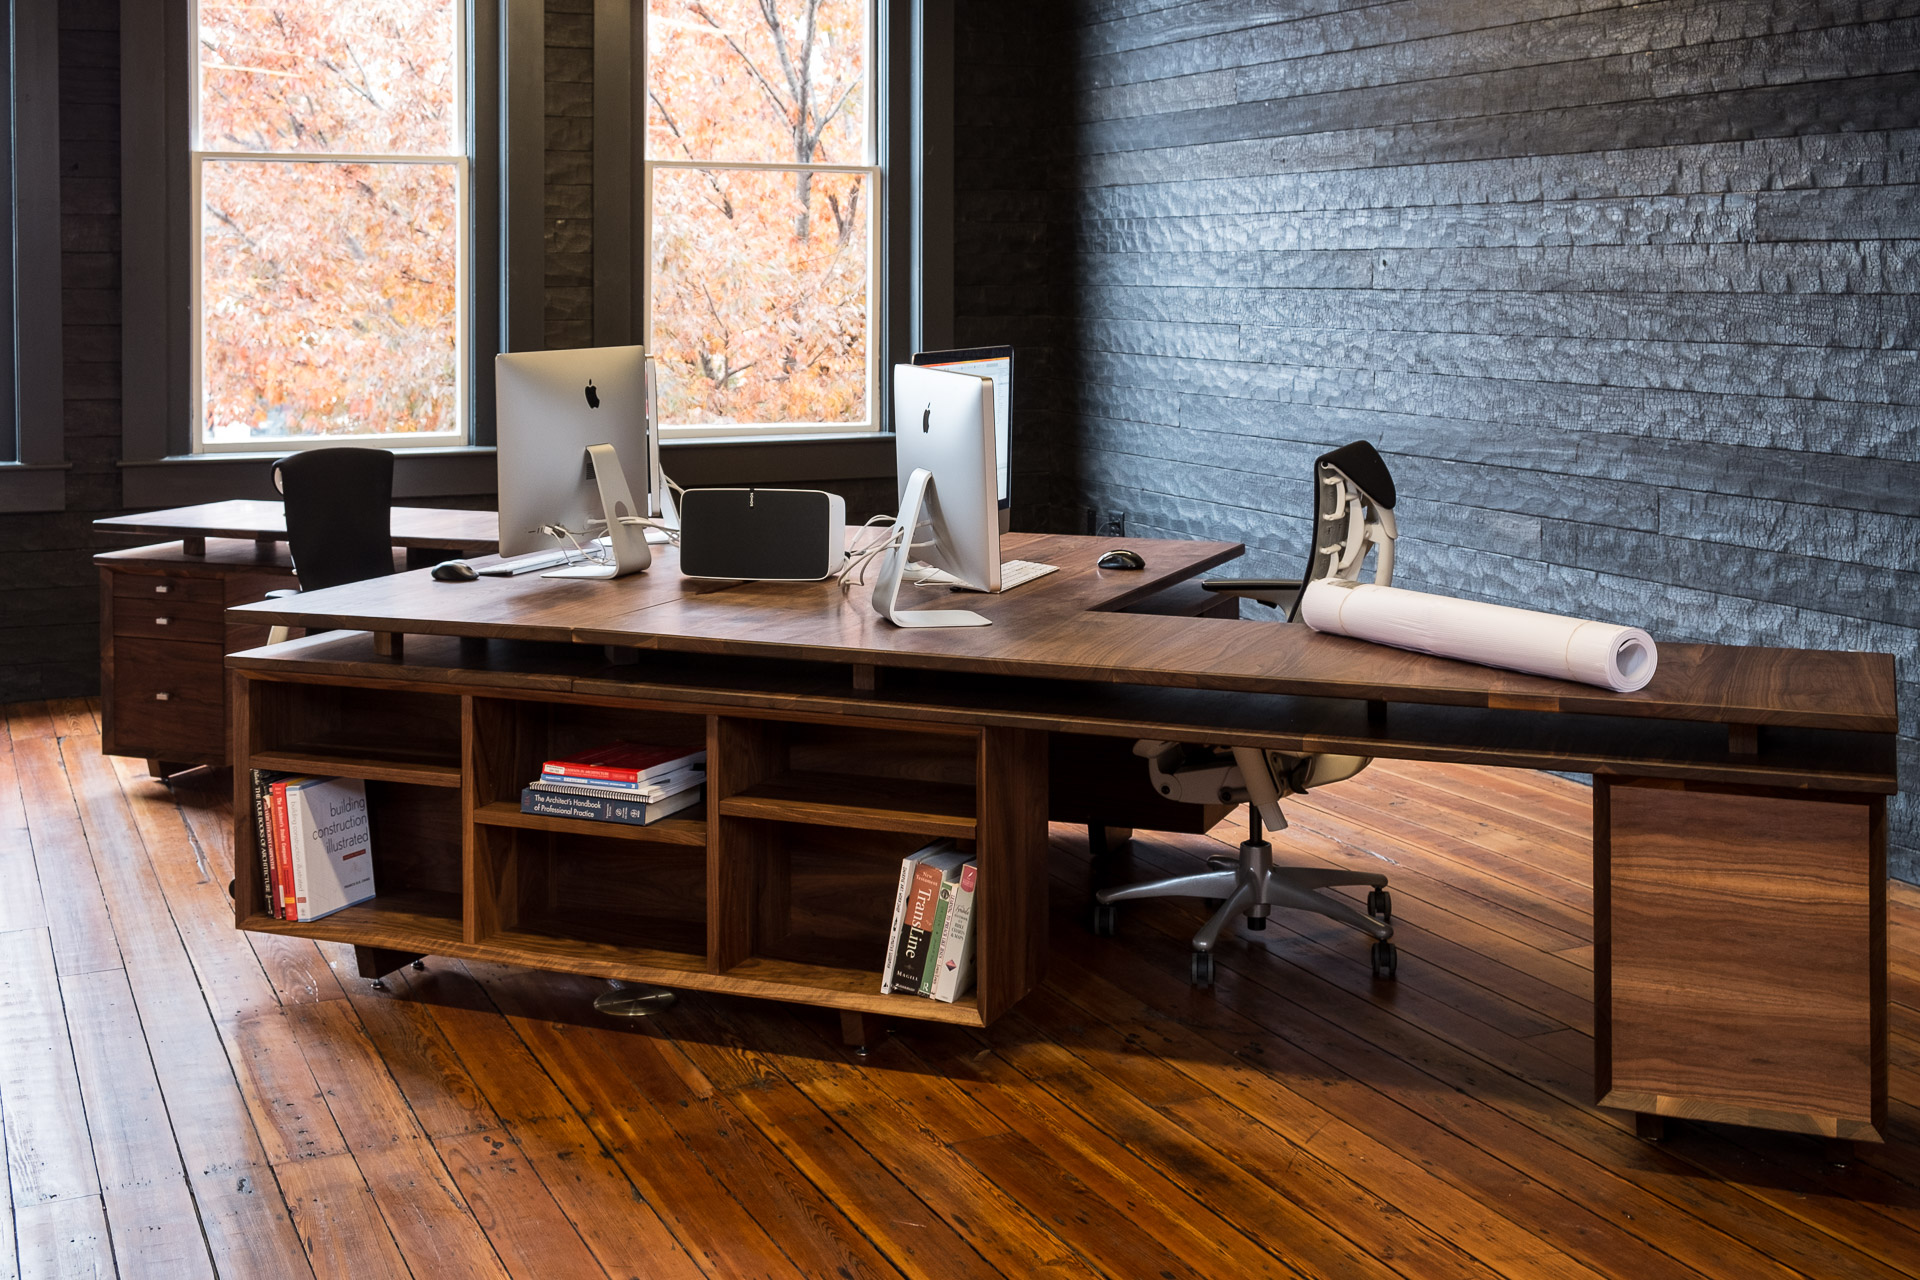 The Desk Was Constructed As Eight Different Pieces All Built Separately And  Assembled In The Office. The Base For The Desk Consists Of Two Bookcases  And Two ...